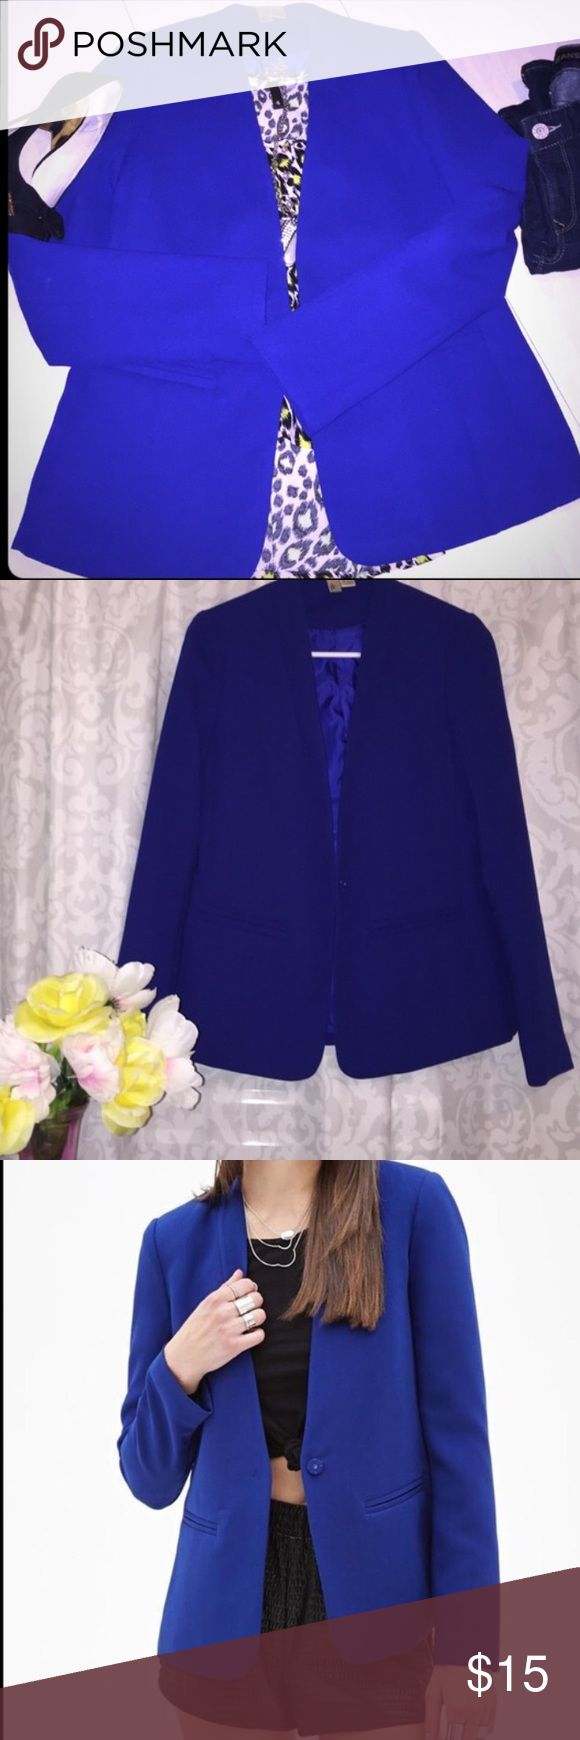 Forever 21 Royal Blue Blazer Forever 21 Royal Blue Blazer, absolutely gorgeous. Forever 21 Jackets & Coats Blazers